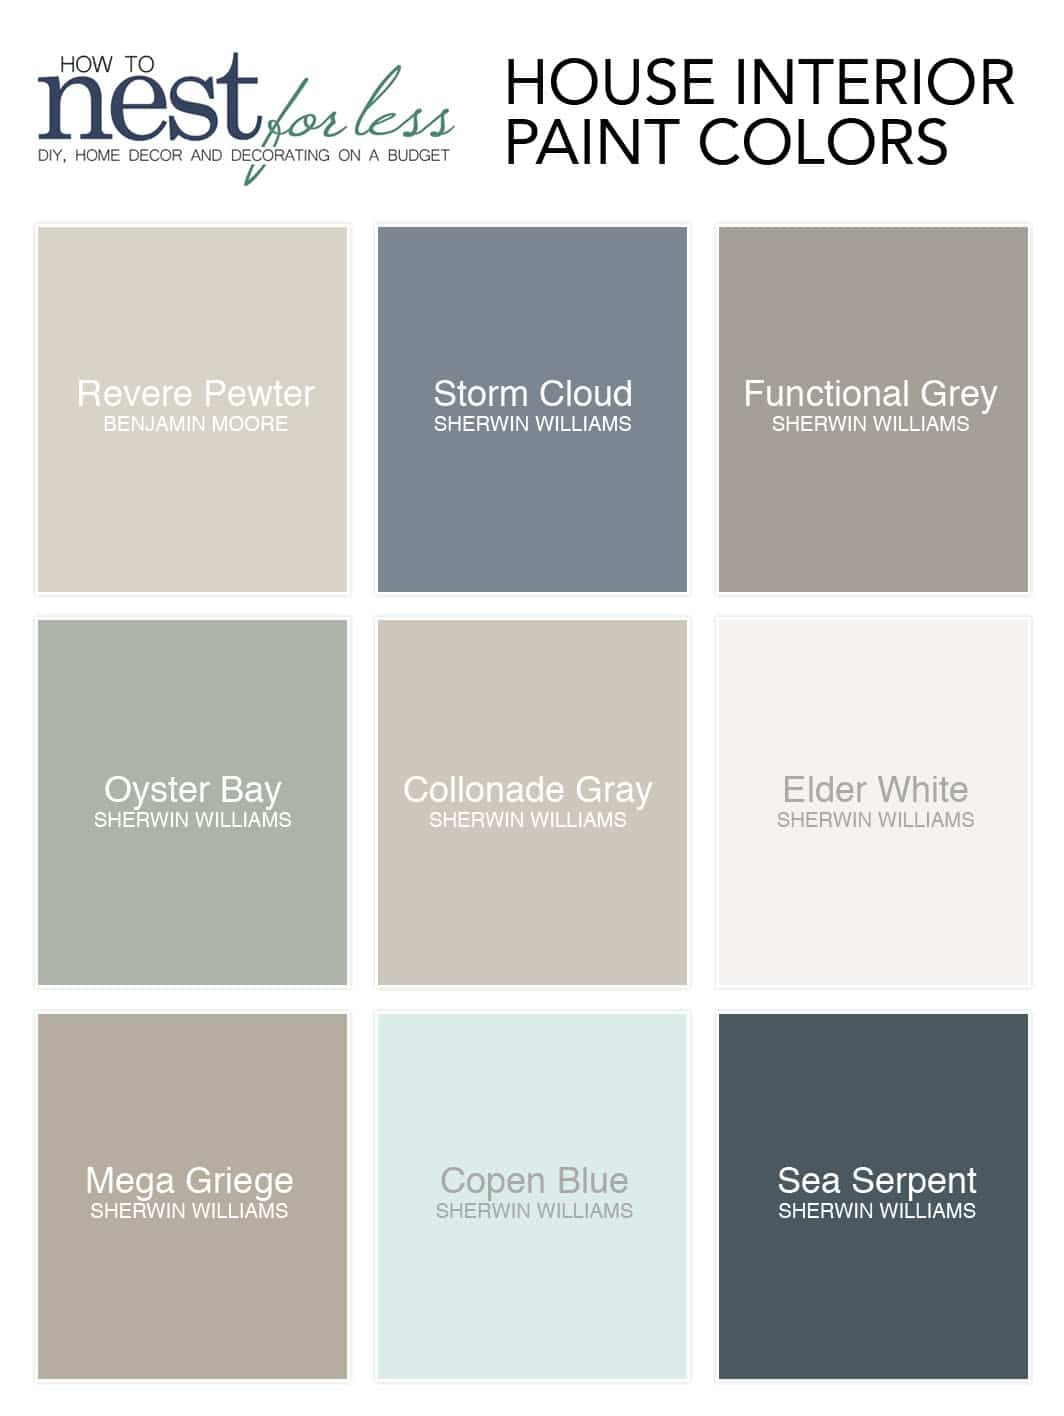 House paint colors with the names on the swatches.